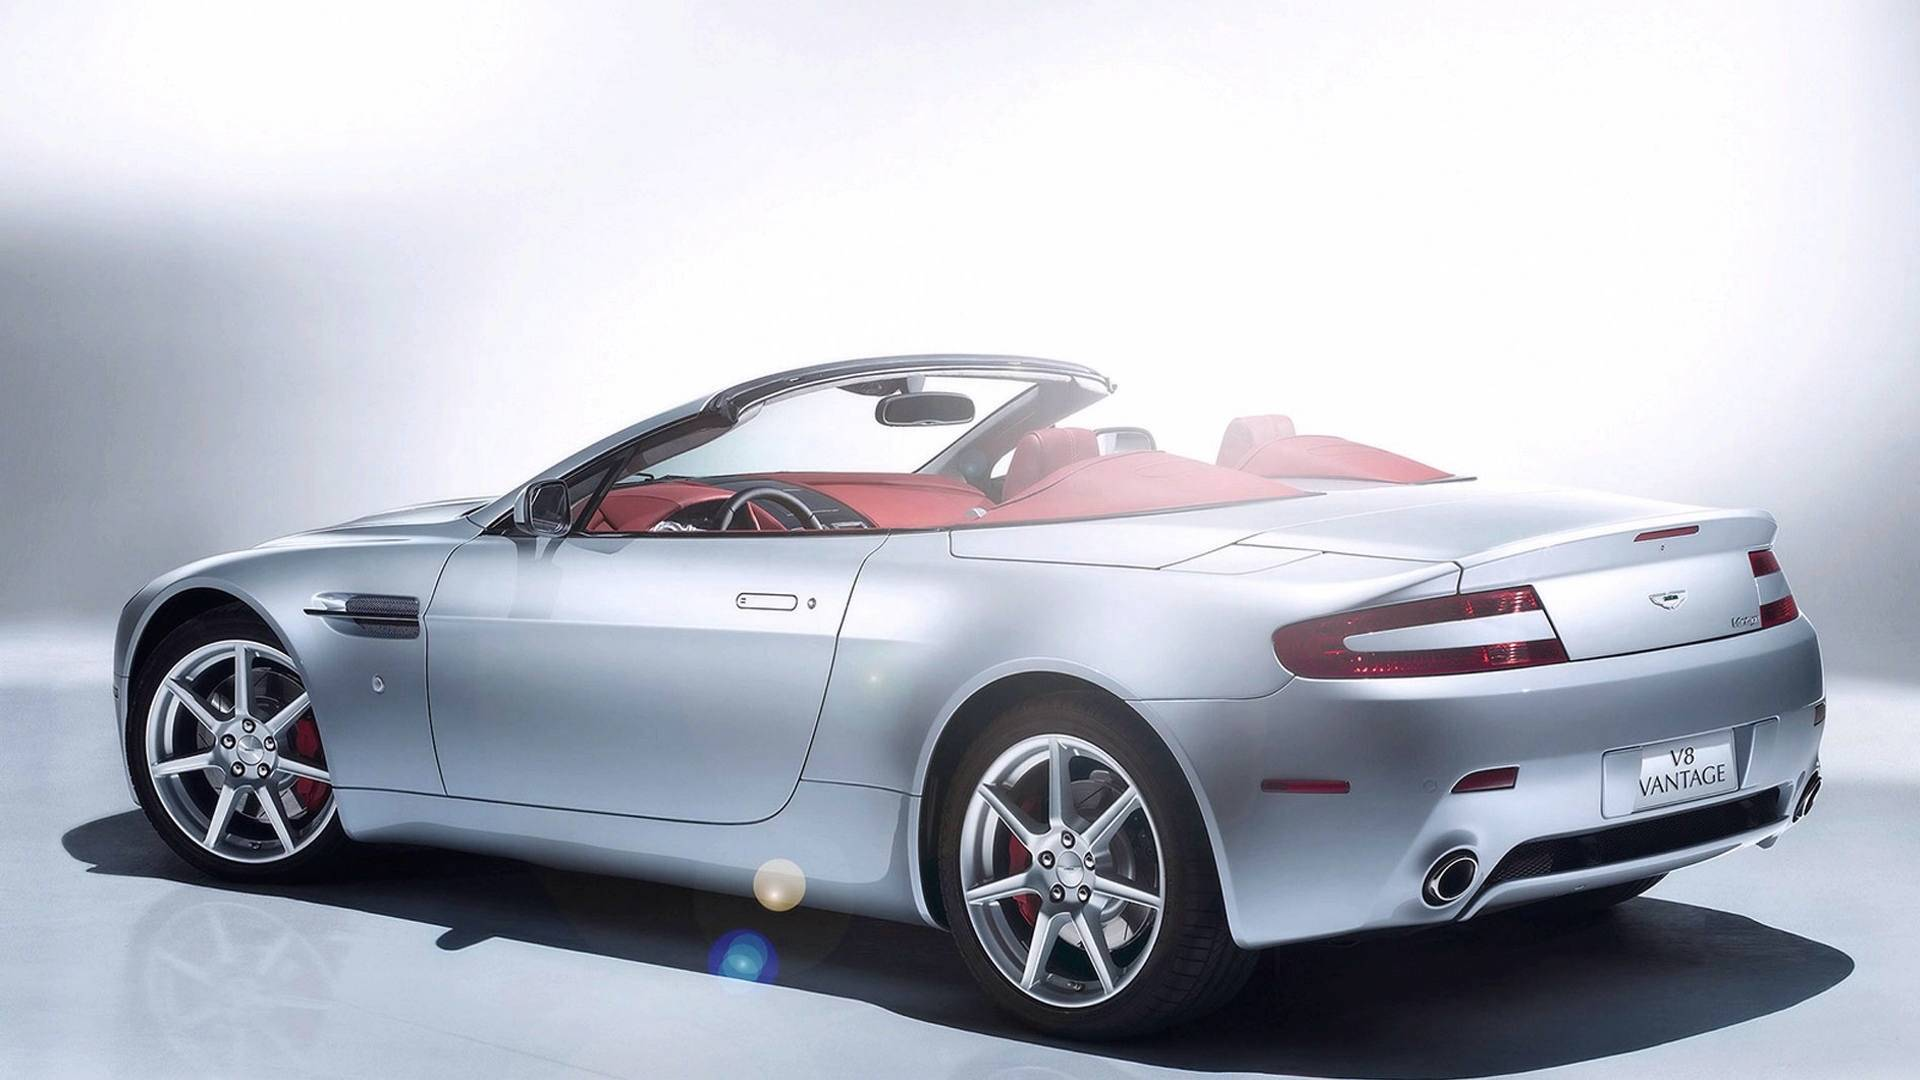 Aston Martin DB9 Wallpapers High Quality Wallpapers 1920x1080